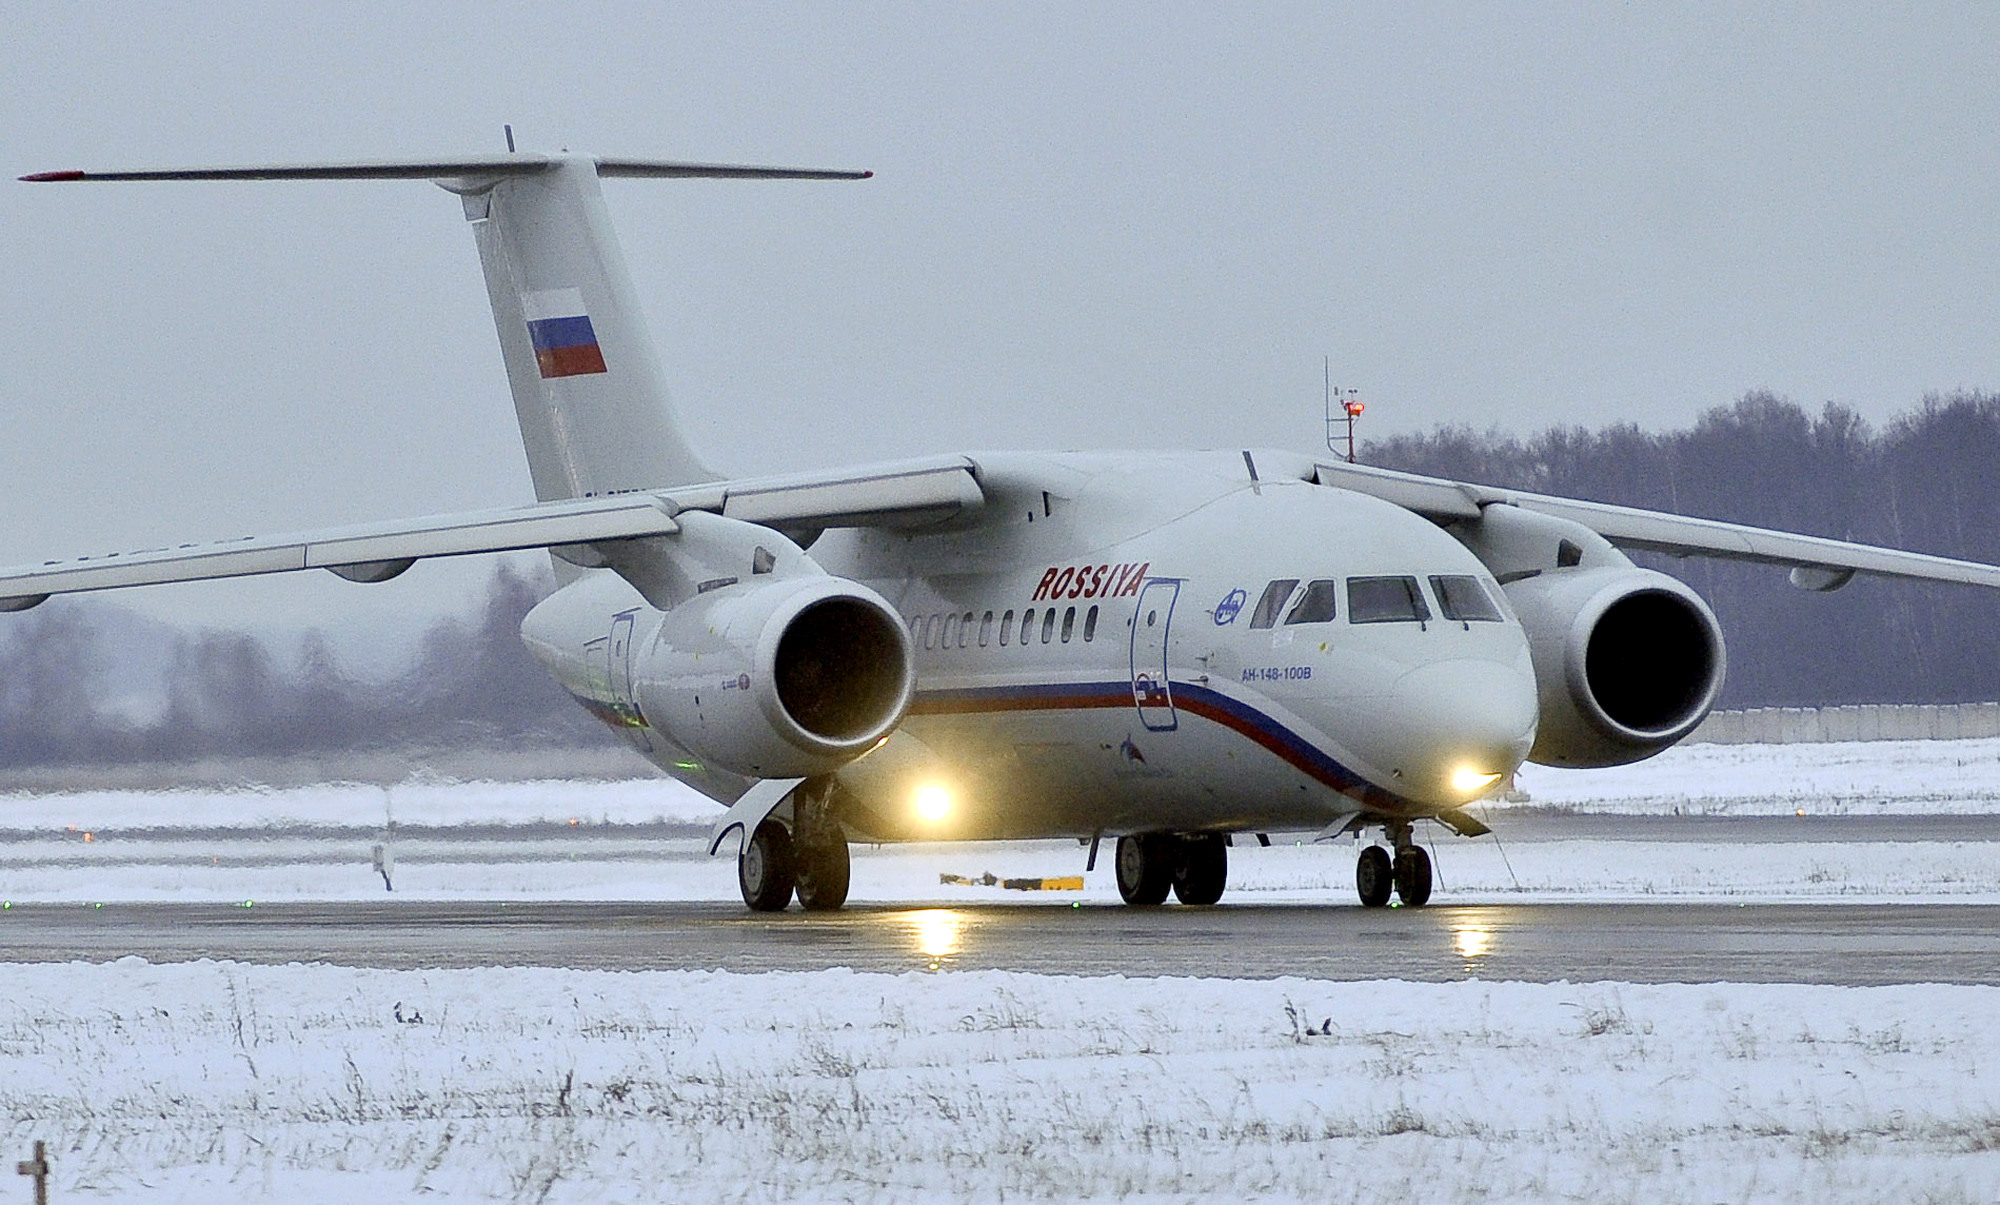 71 feared dead as Russian plane crashes near Moscow | The ...